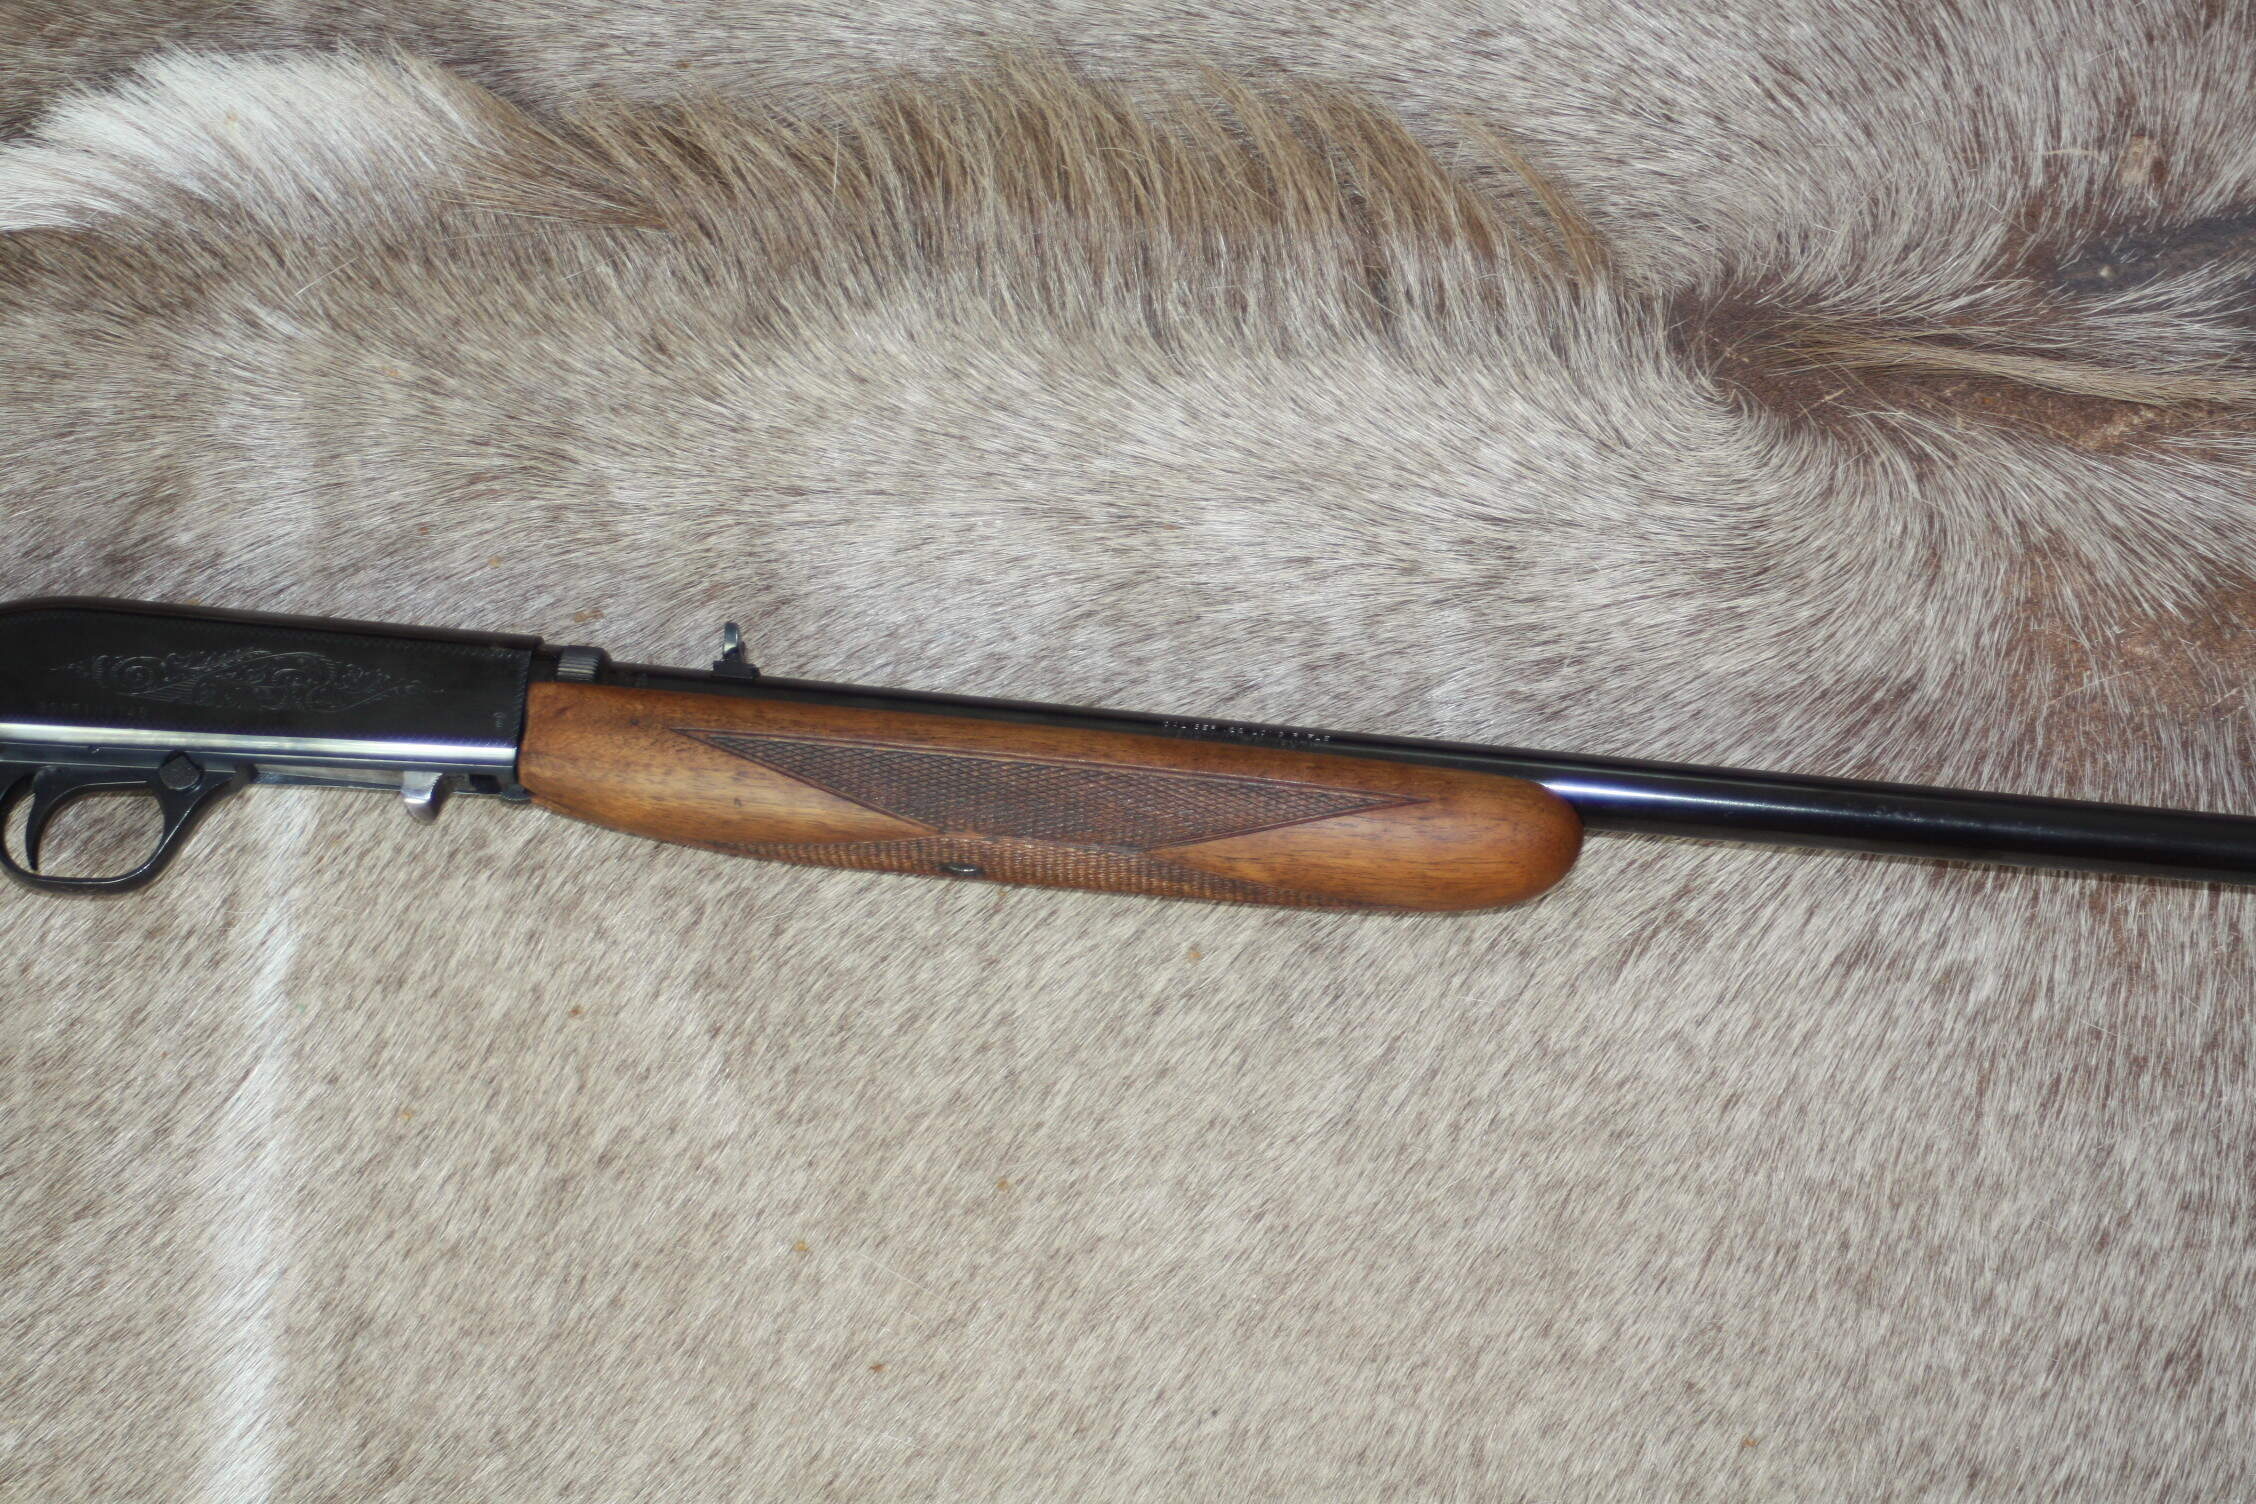 Browning SA22 .22 LR semi auto rifle